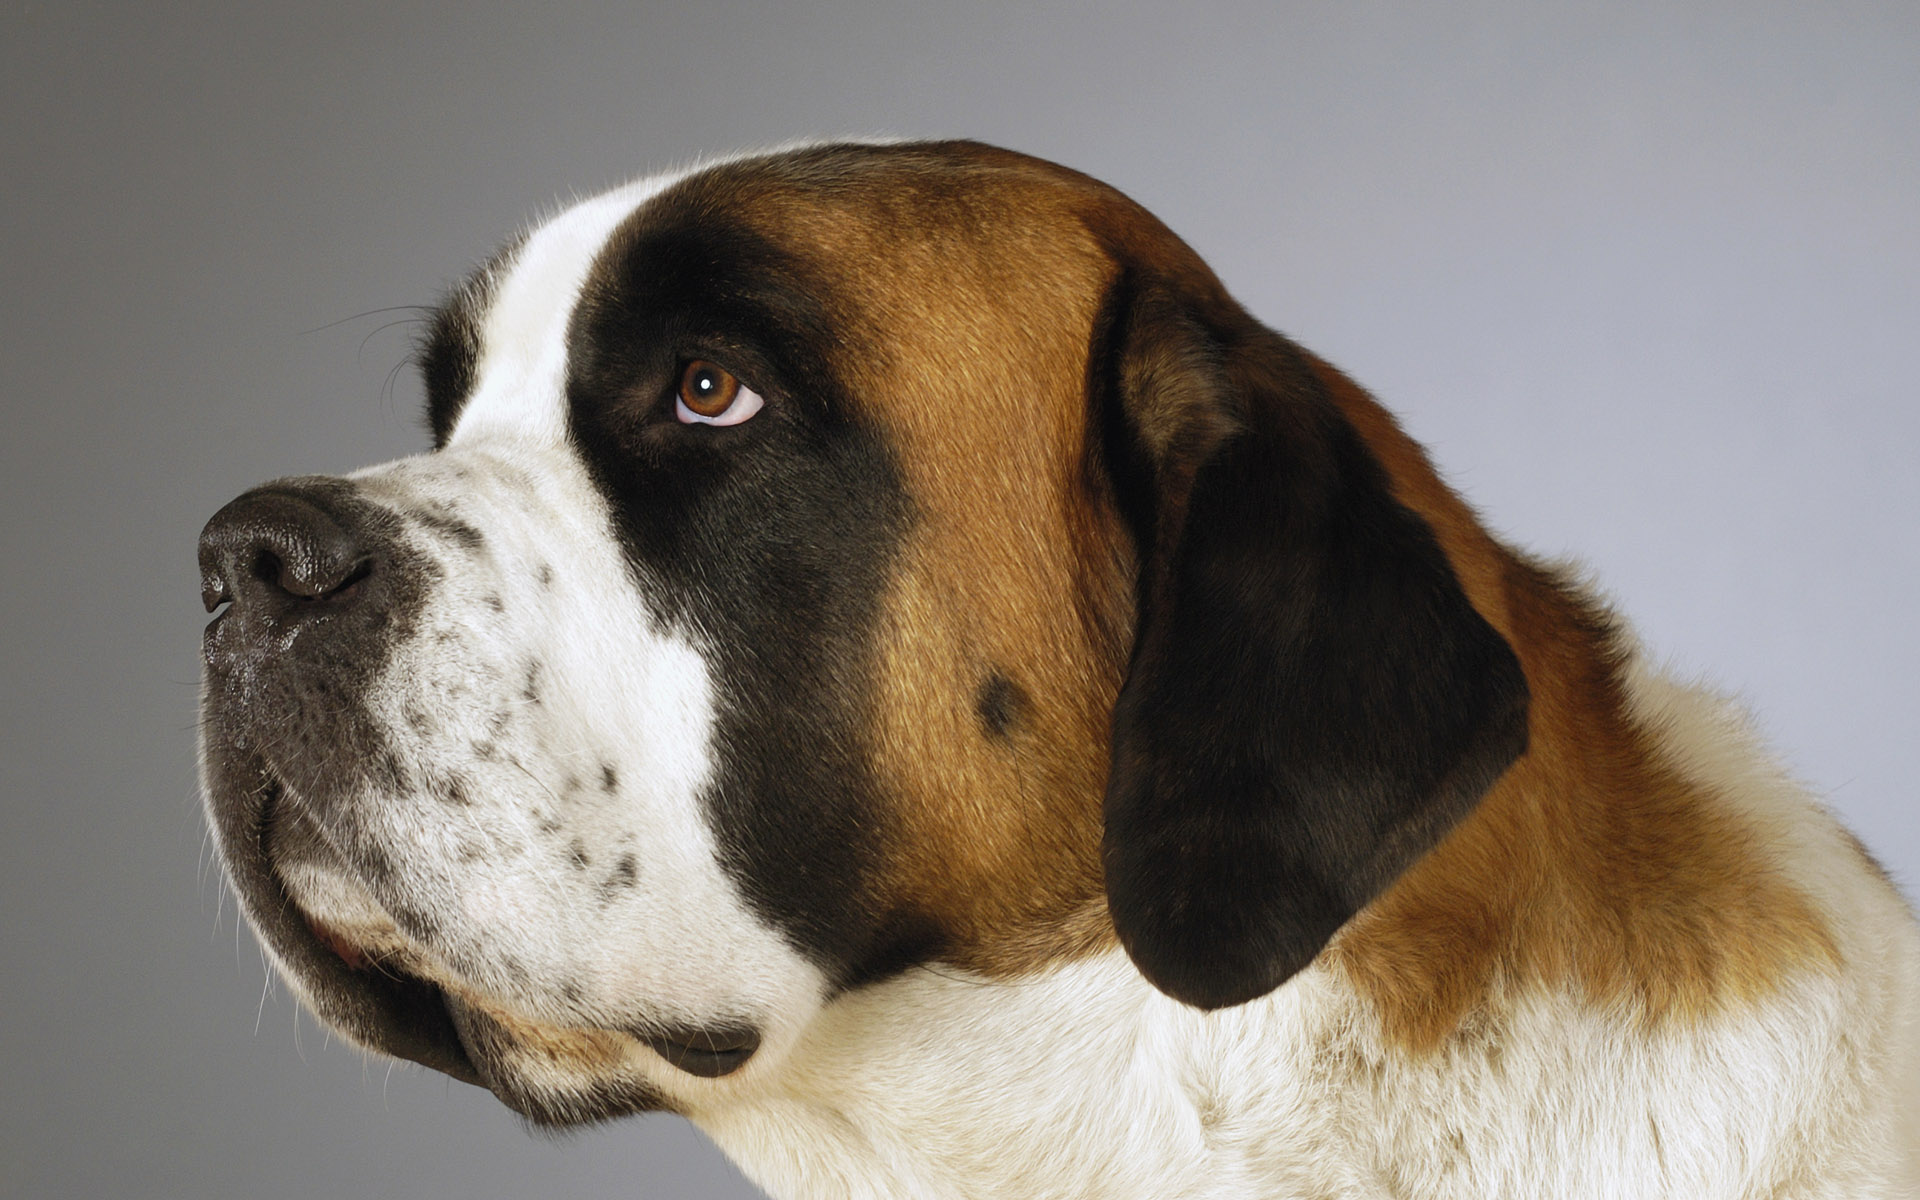 Side profile of a St. Bernard dog looking up